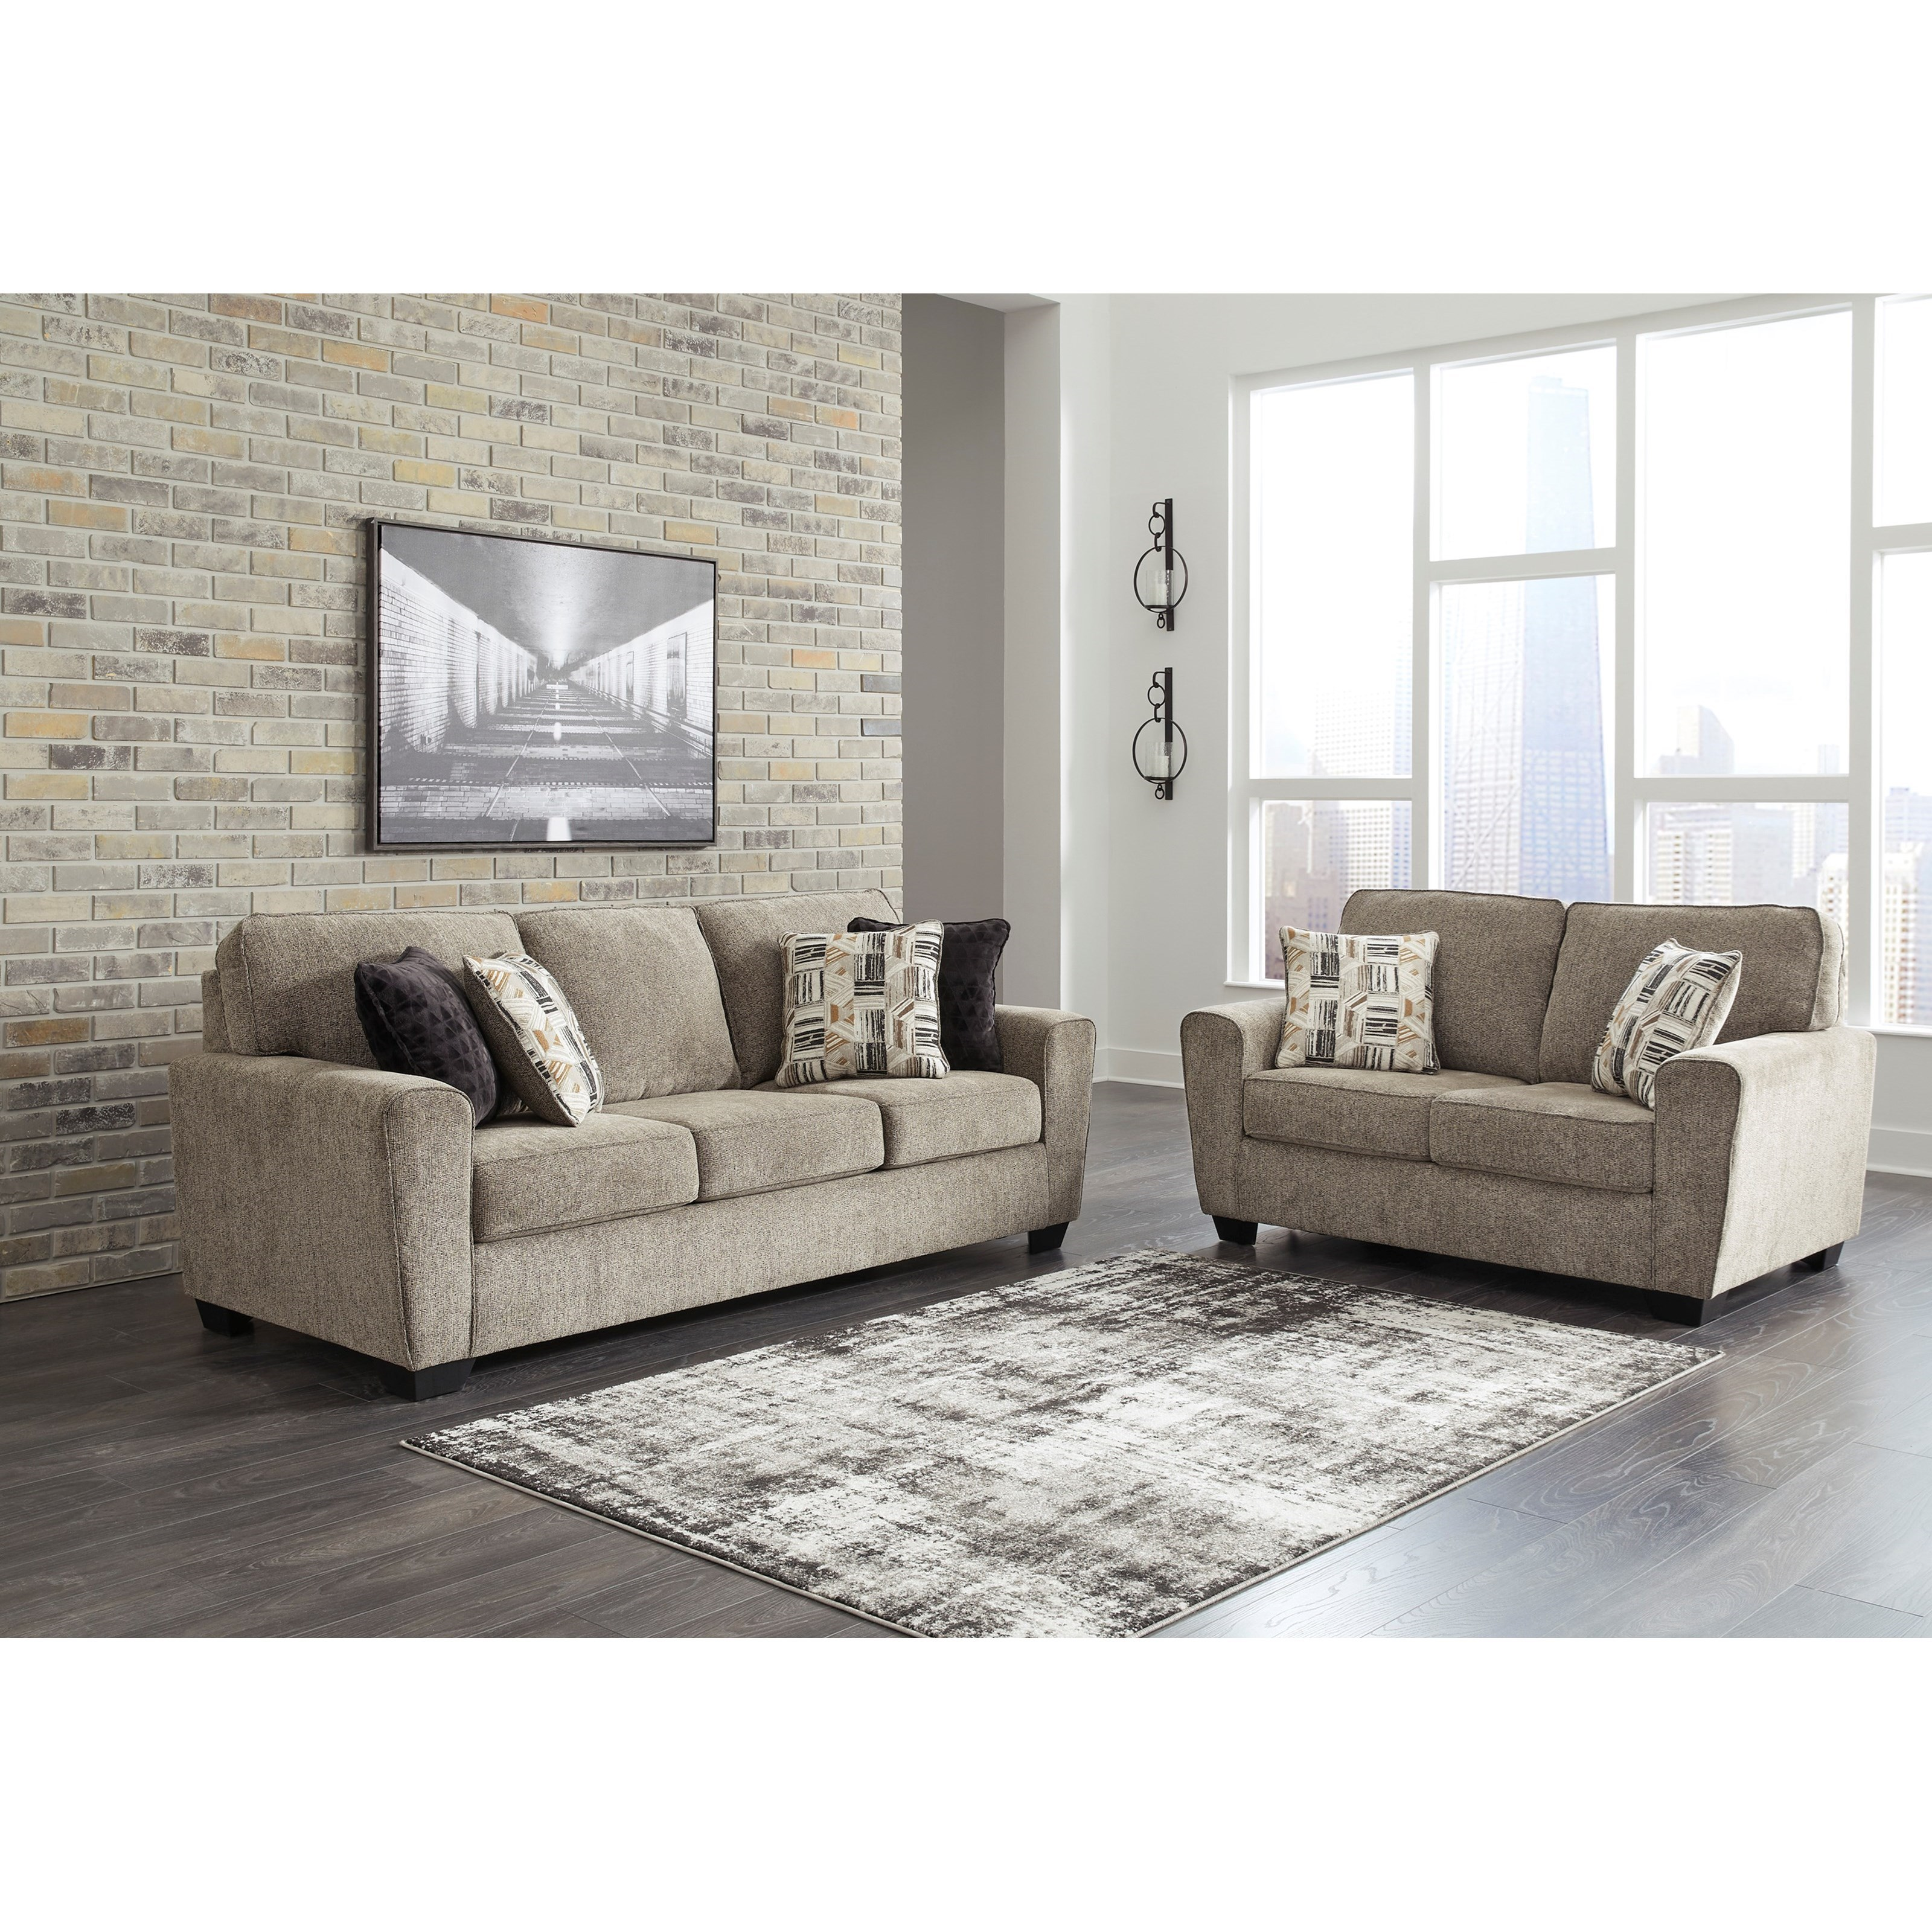 McCluer Living Room Group by Benchcraft at Zak's Warehouse Clearance Center